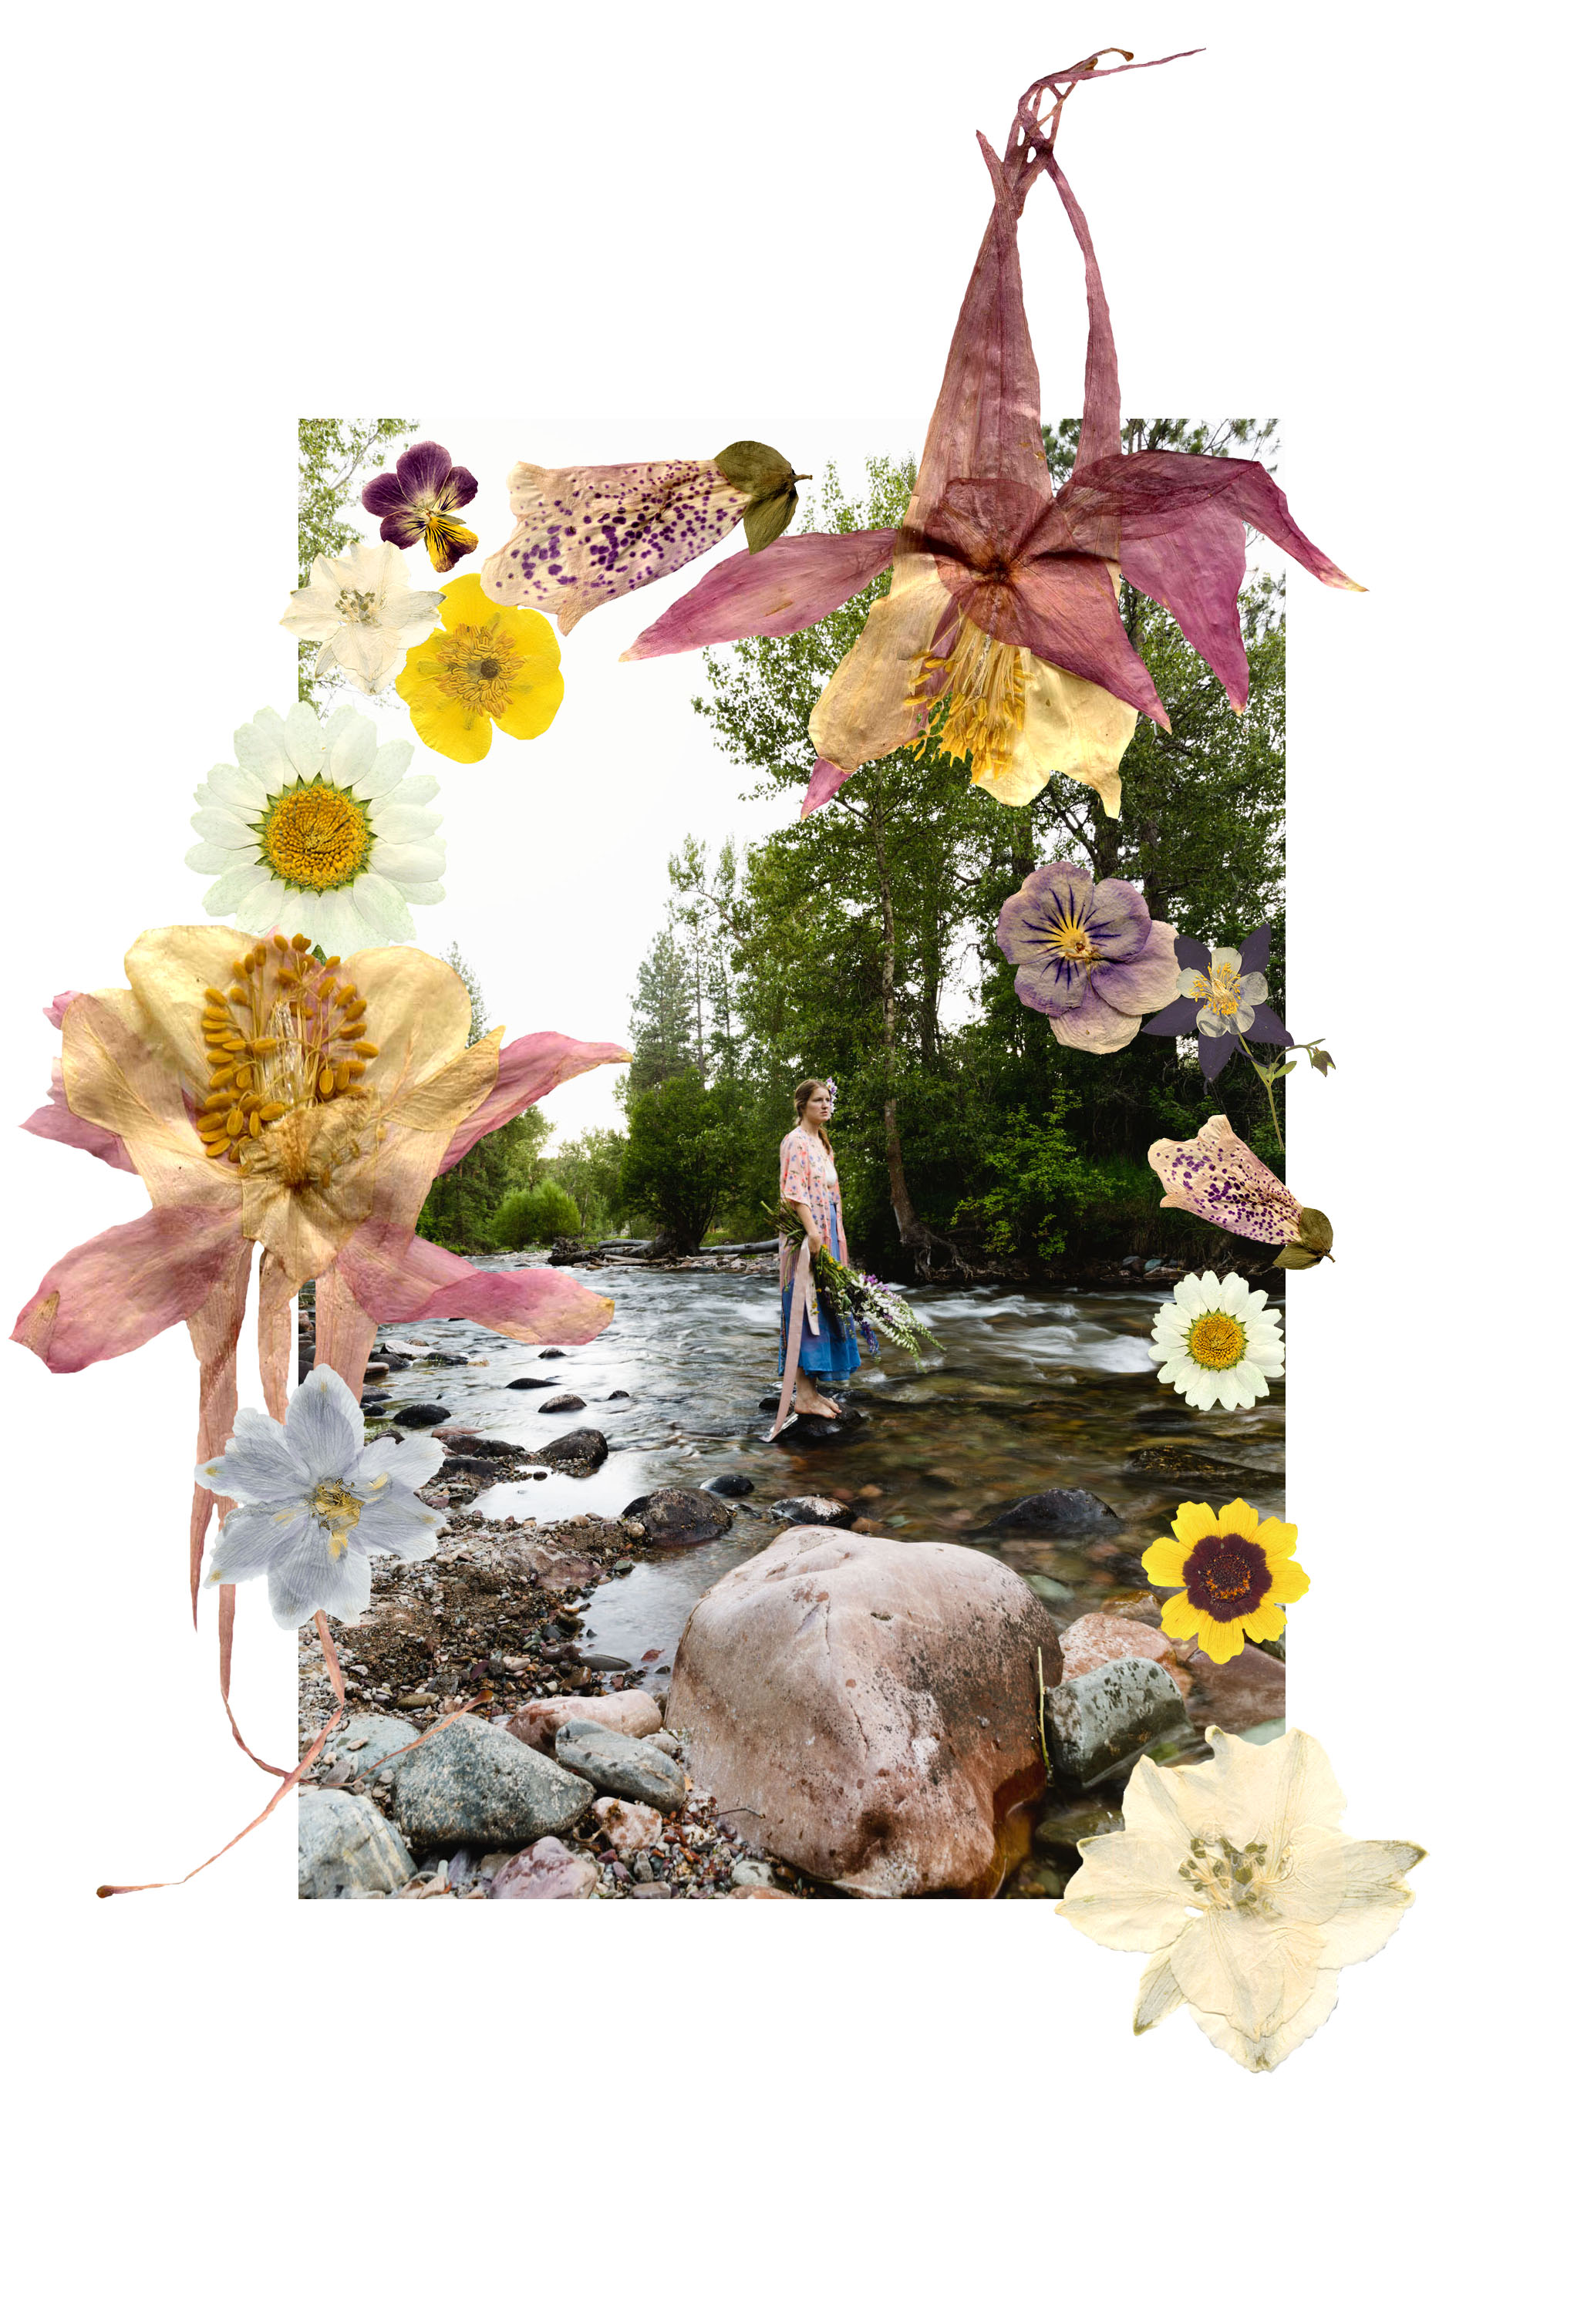 creek_flowers_woman.jpg